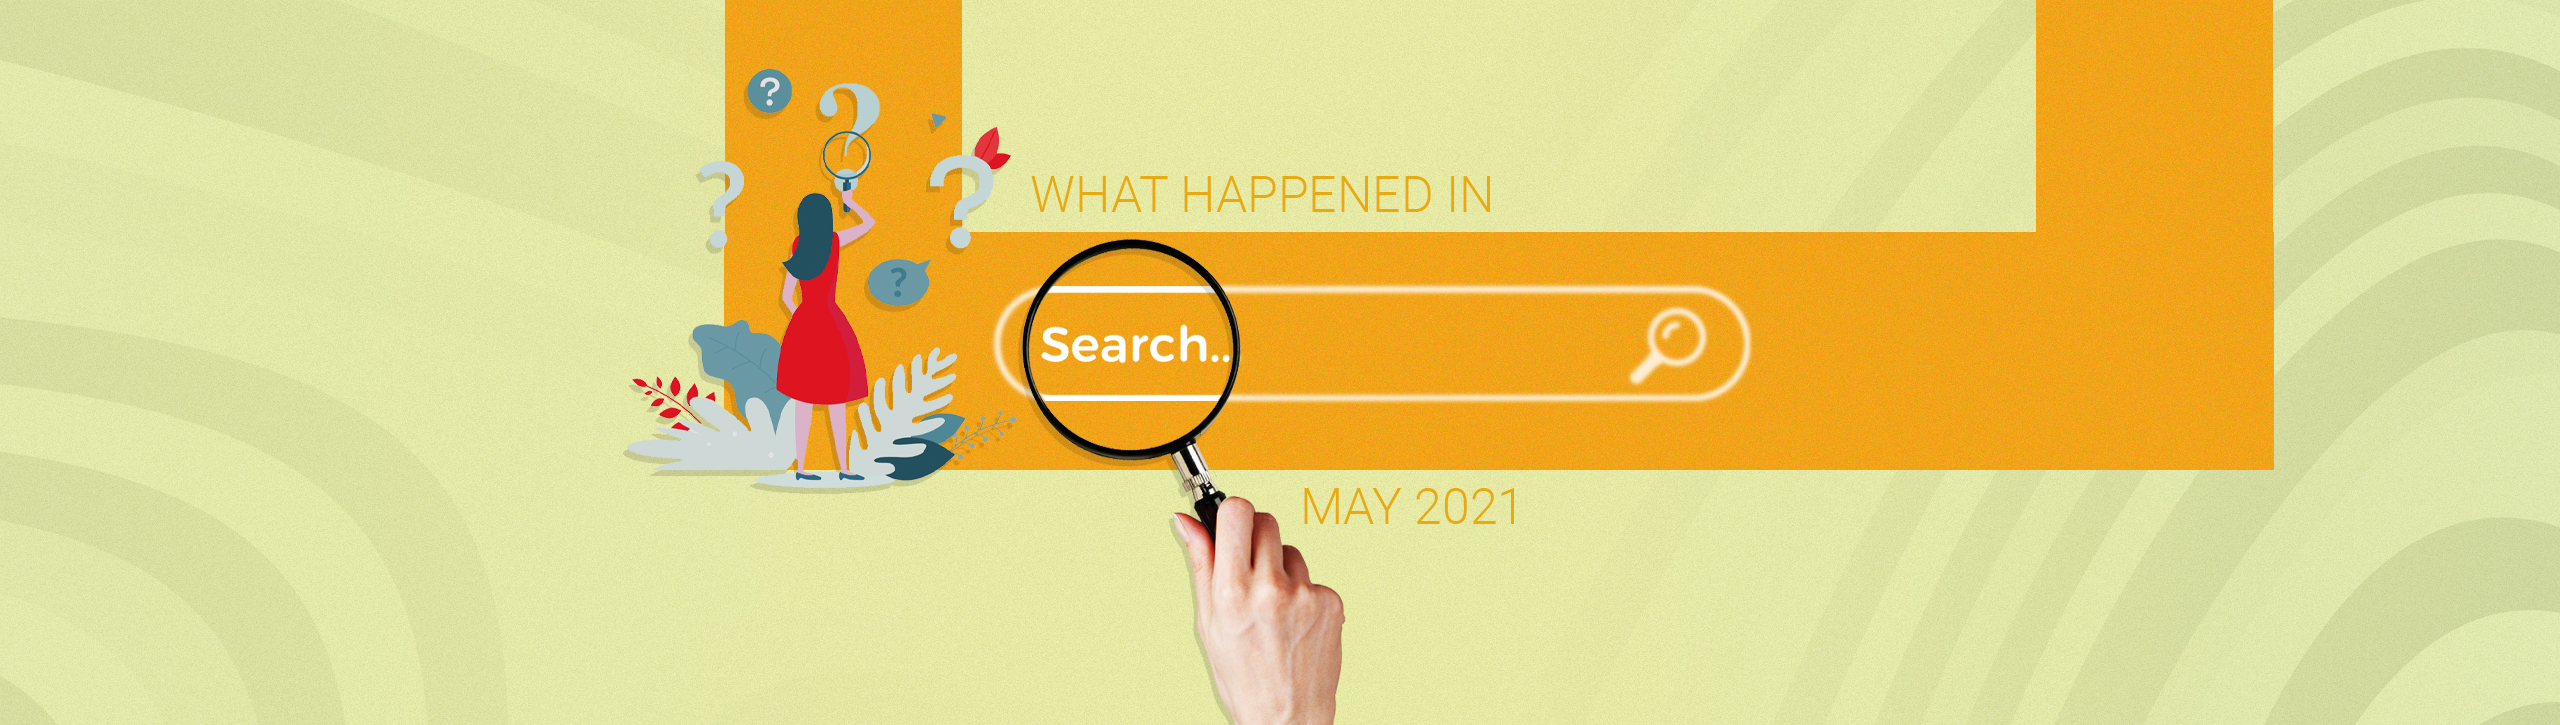 Search Updates May 2021